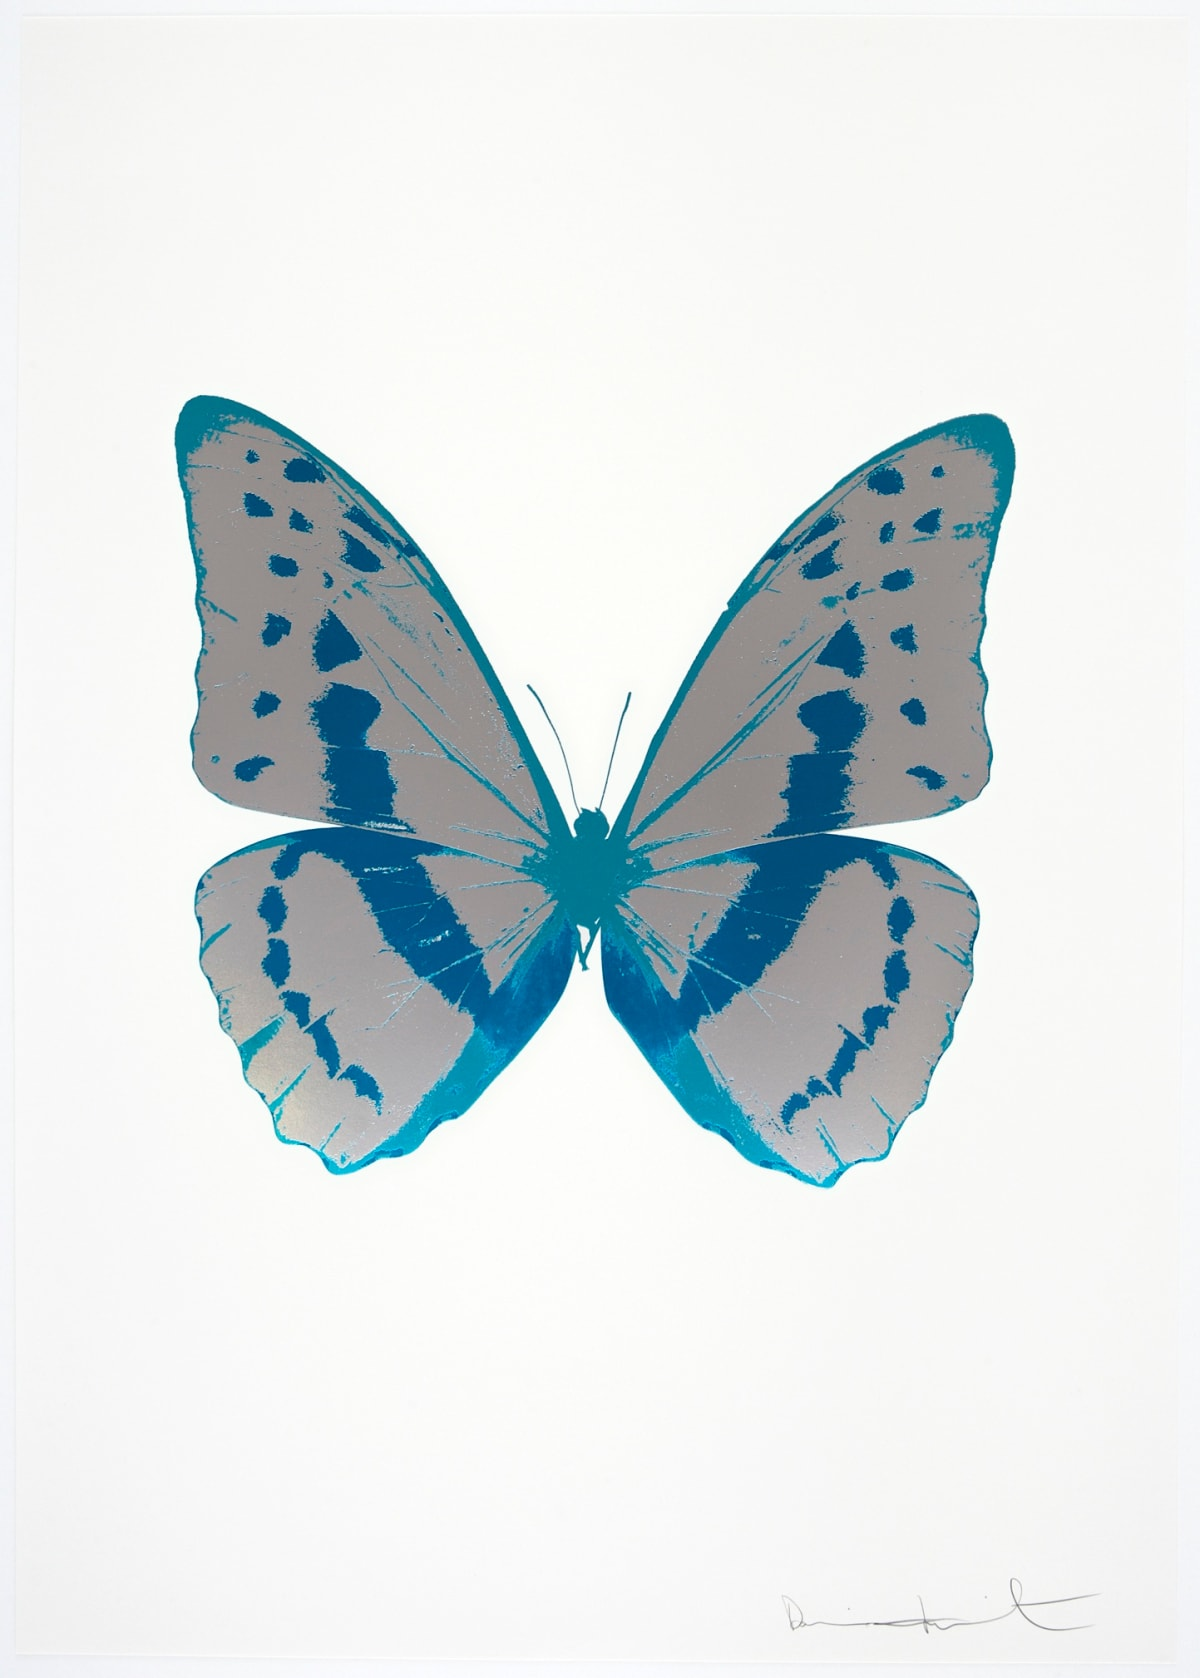 Damien Hirst The Souls III - Silver Gloss/Turquoise/Topaz, 2010 3 colour foil block on 300gsm Arches 88 archival paper. Signed and numbered. Published by Paul Stolper and Other Criteria 72 x 51cm OC7958 / 660-61 Edition of 15